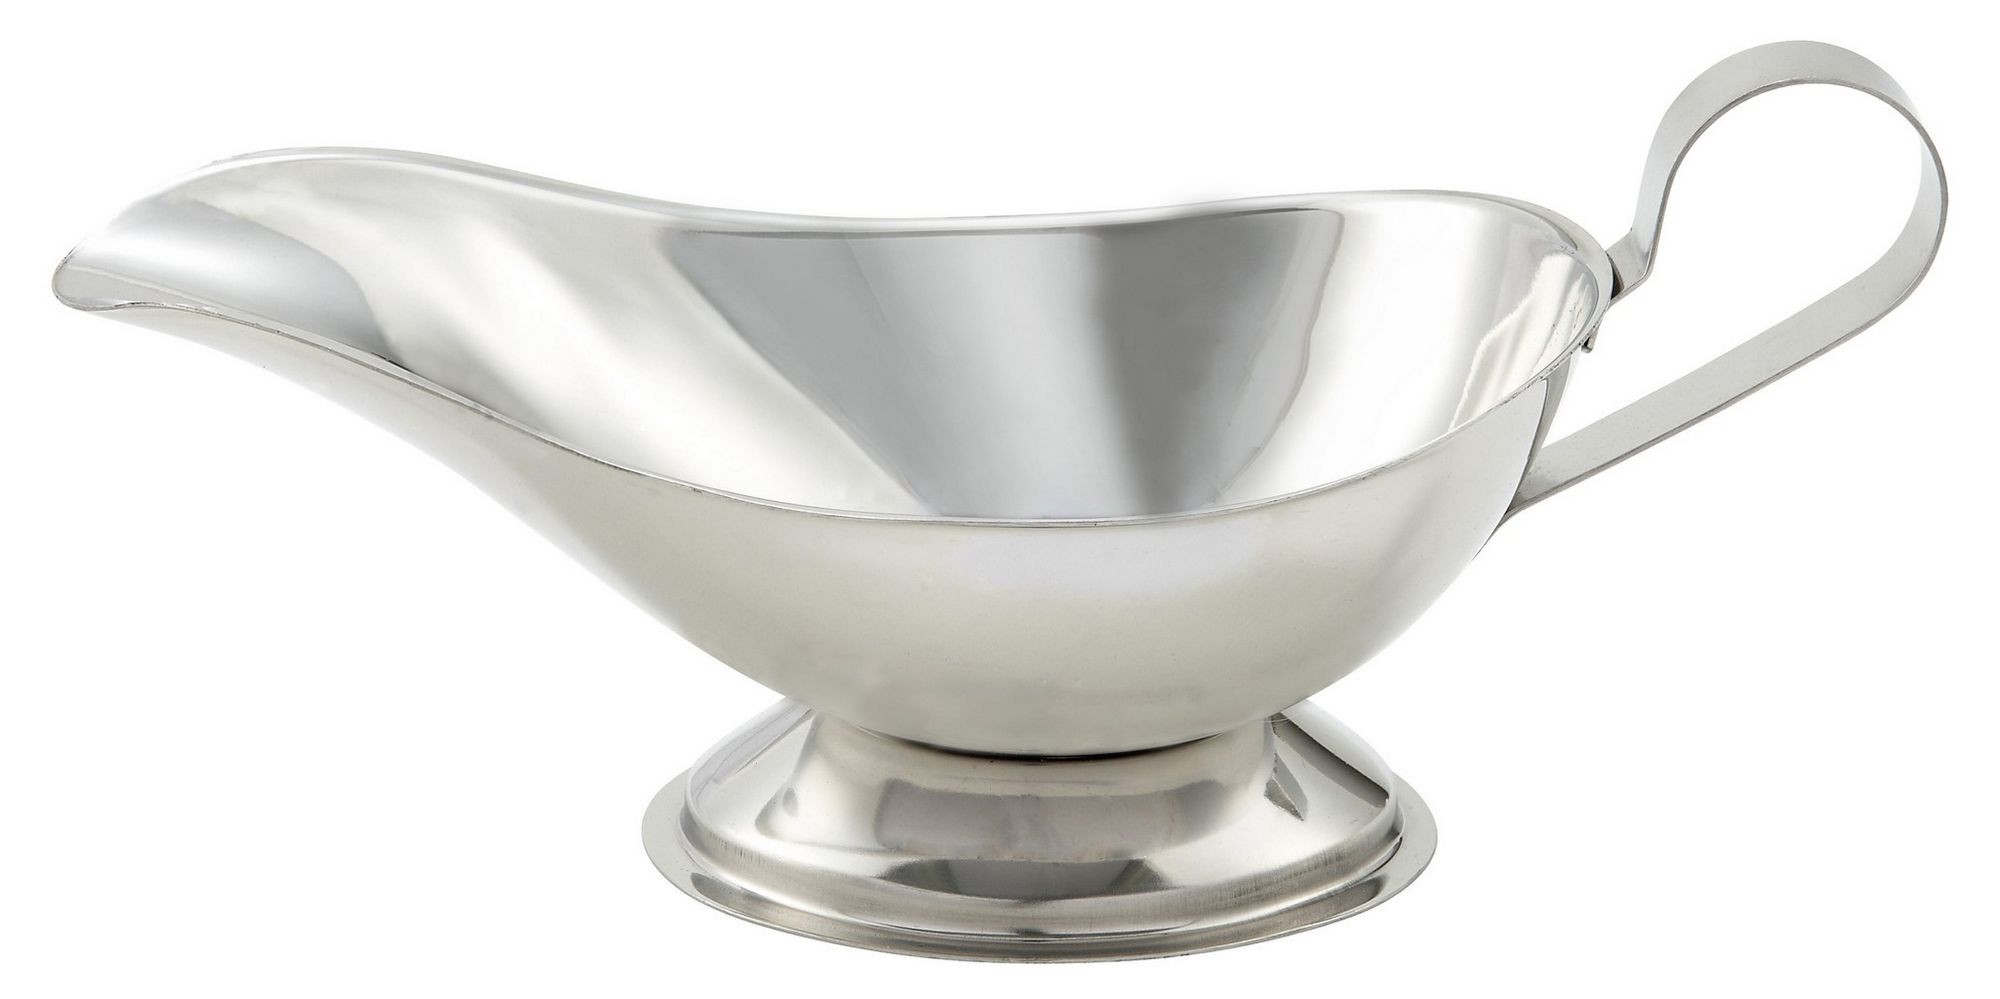 Winco gbs-10 Stainless Steel 10 oz. Gravy Boat